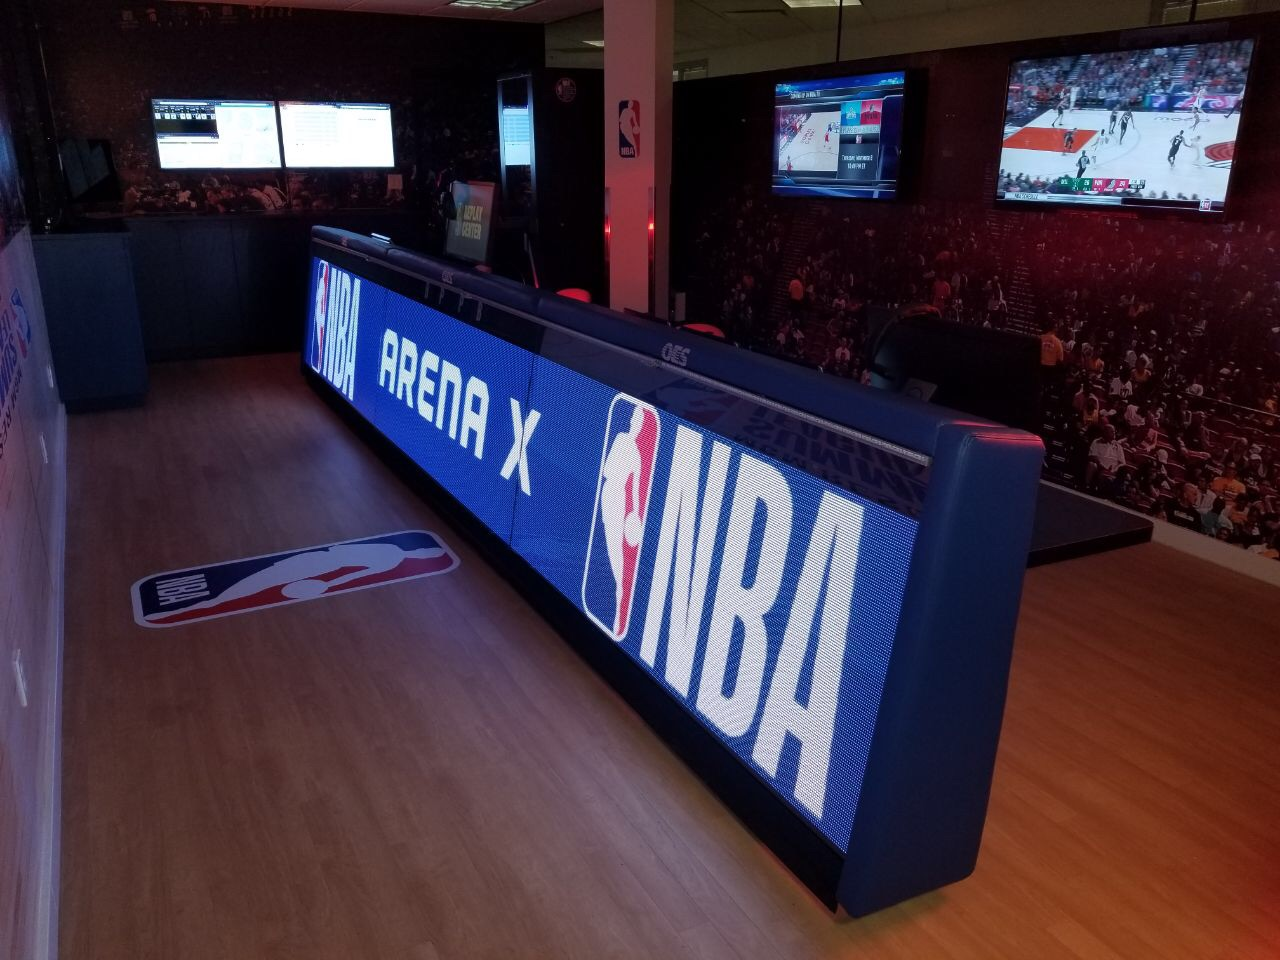 Arena X NBA digital sign